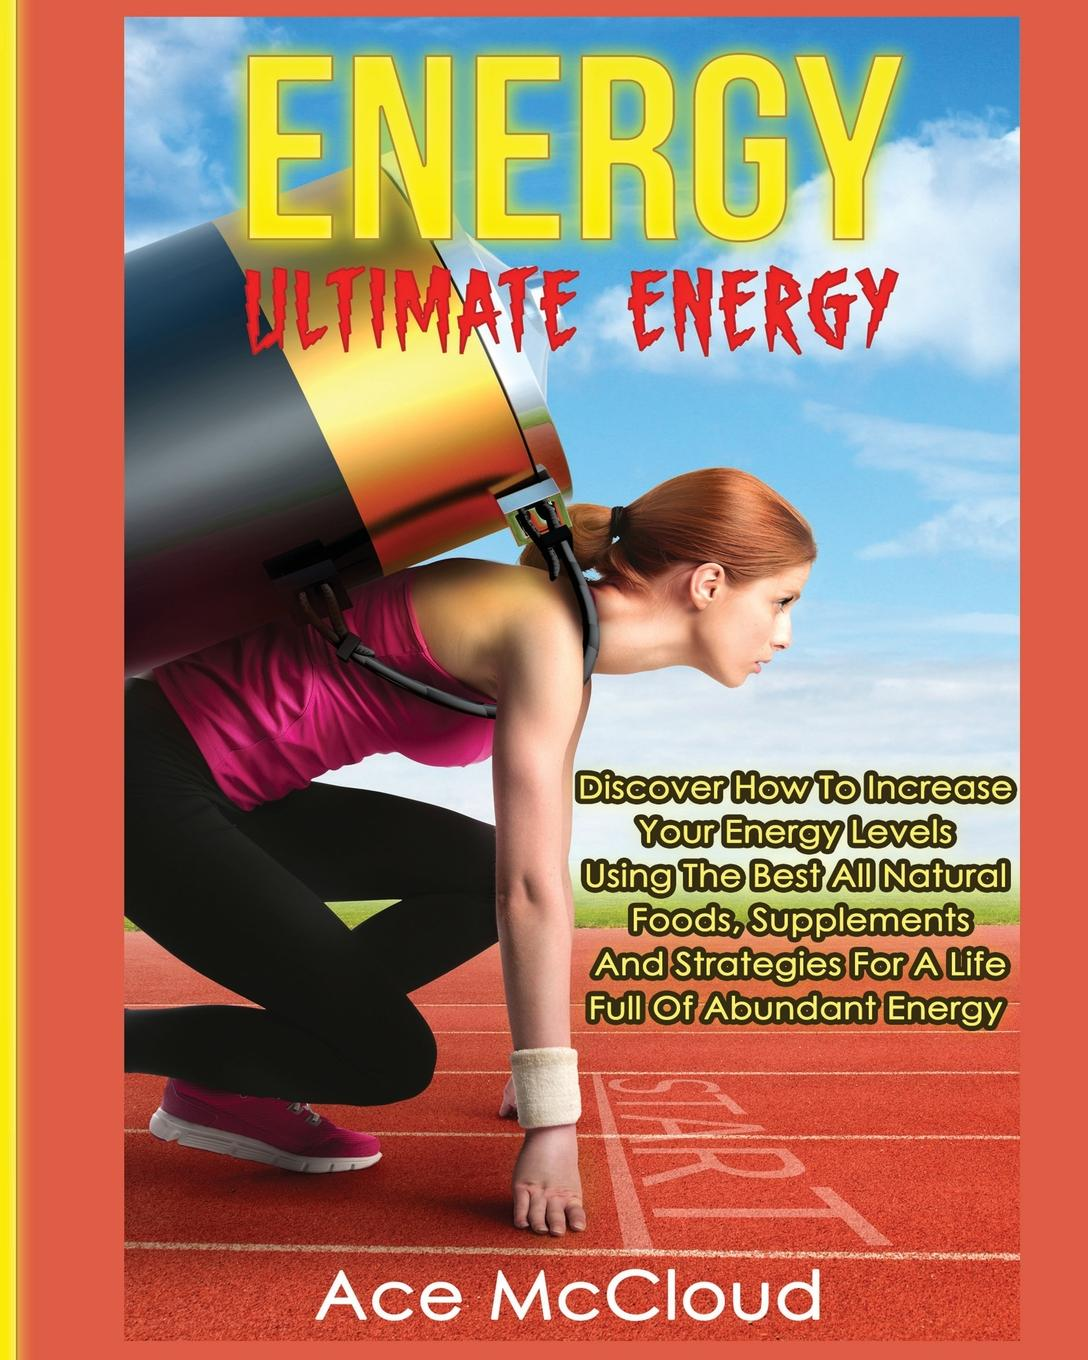 Ace McCloud Energy. Ultimate Energy: Discover How To Increase Your Energy Levels Using The Best All Natural Foods, Supplements And Strategies For A Life Full Of Abundant Energy ken blanchard the energy bus 10 rules to fuel your life work and team with positive energy